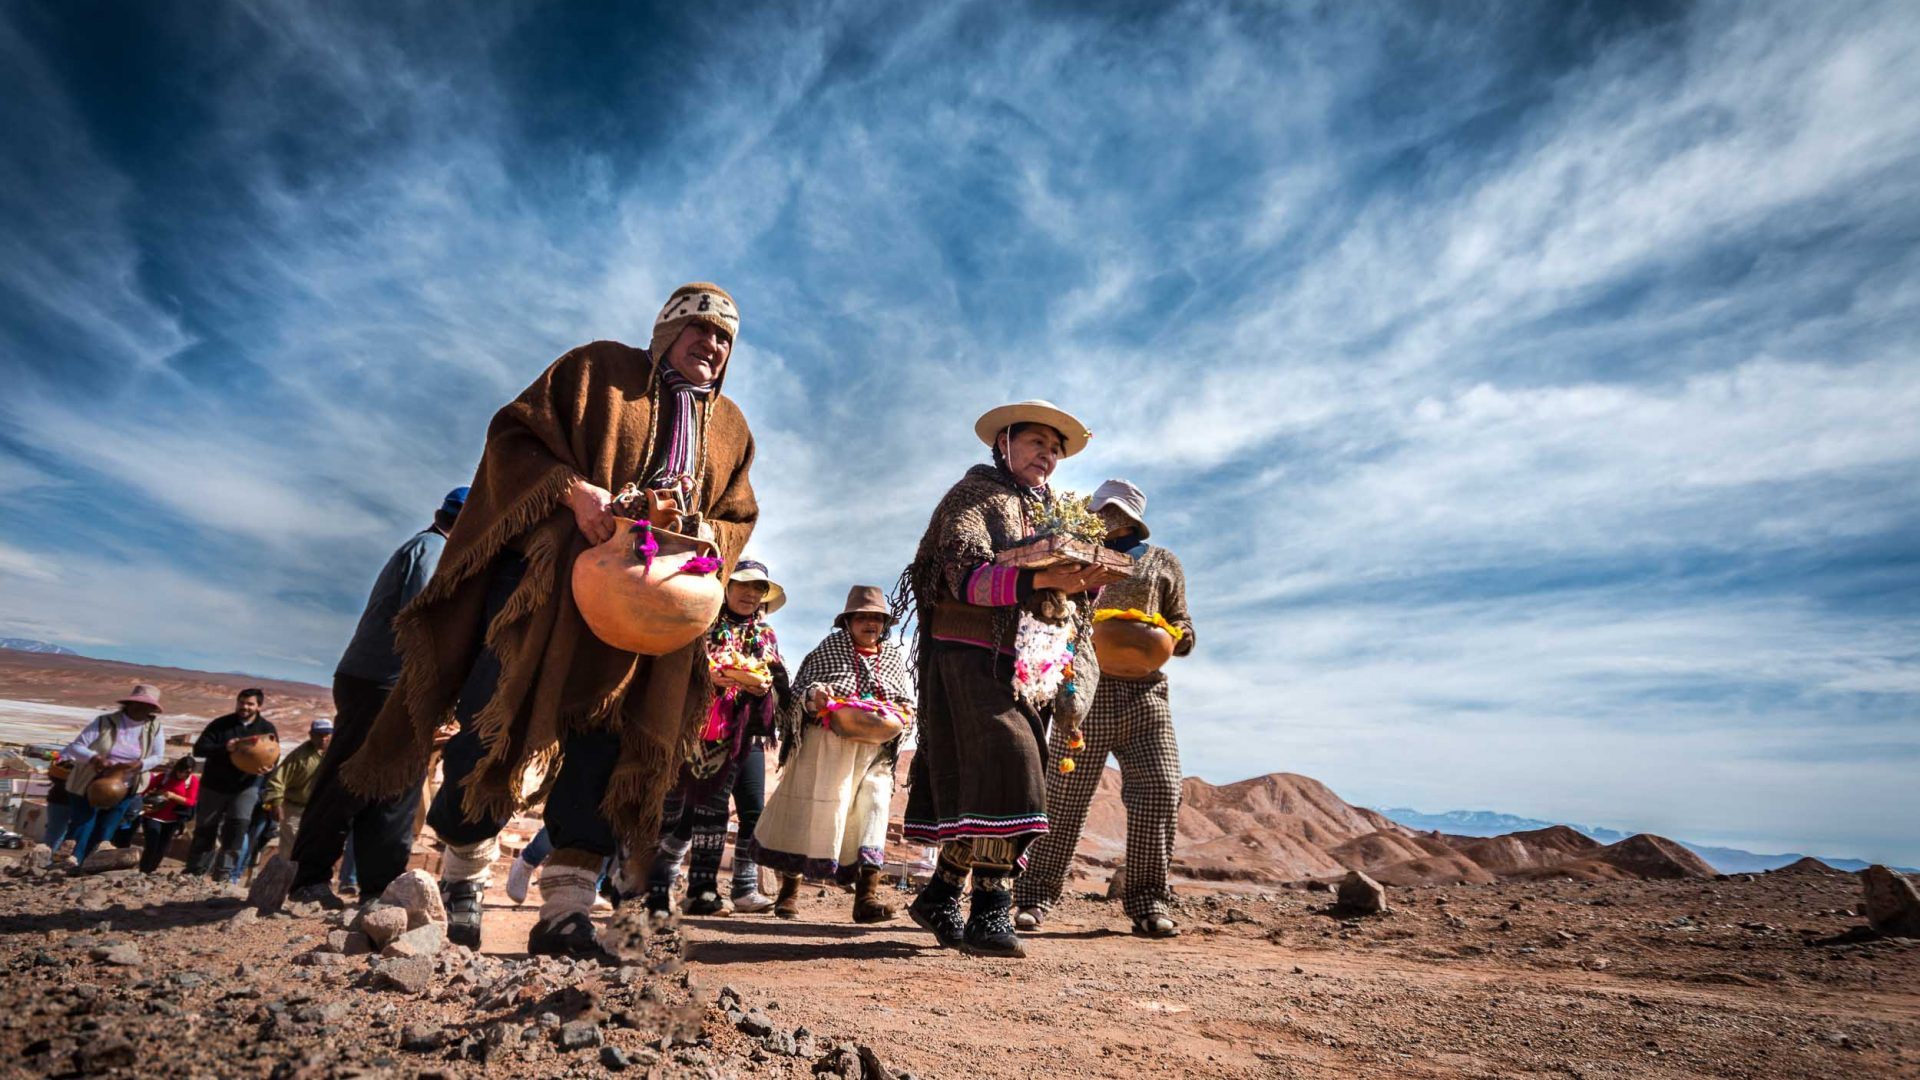 Locals bring offerings to goddess Pachamama, or Mother Earth, in Salta, Argentina.